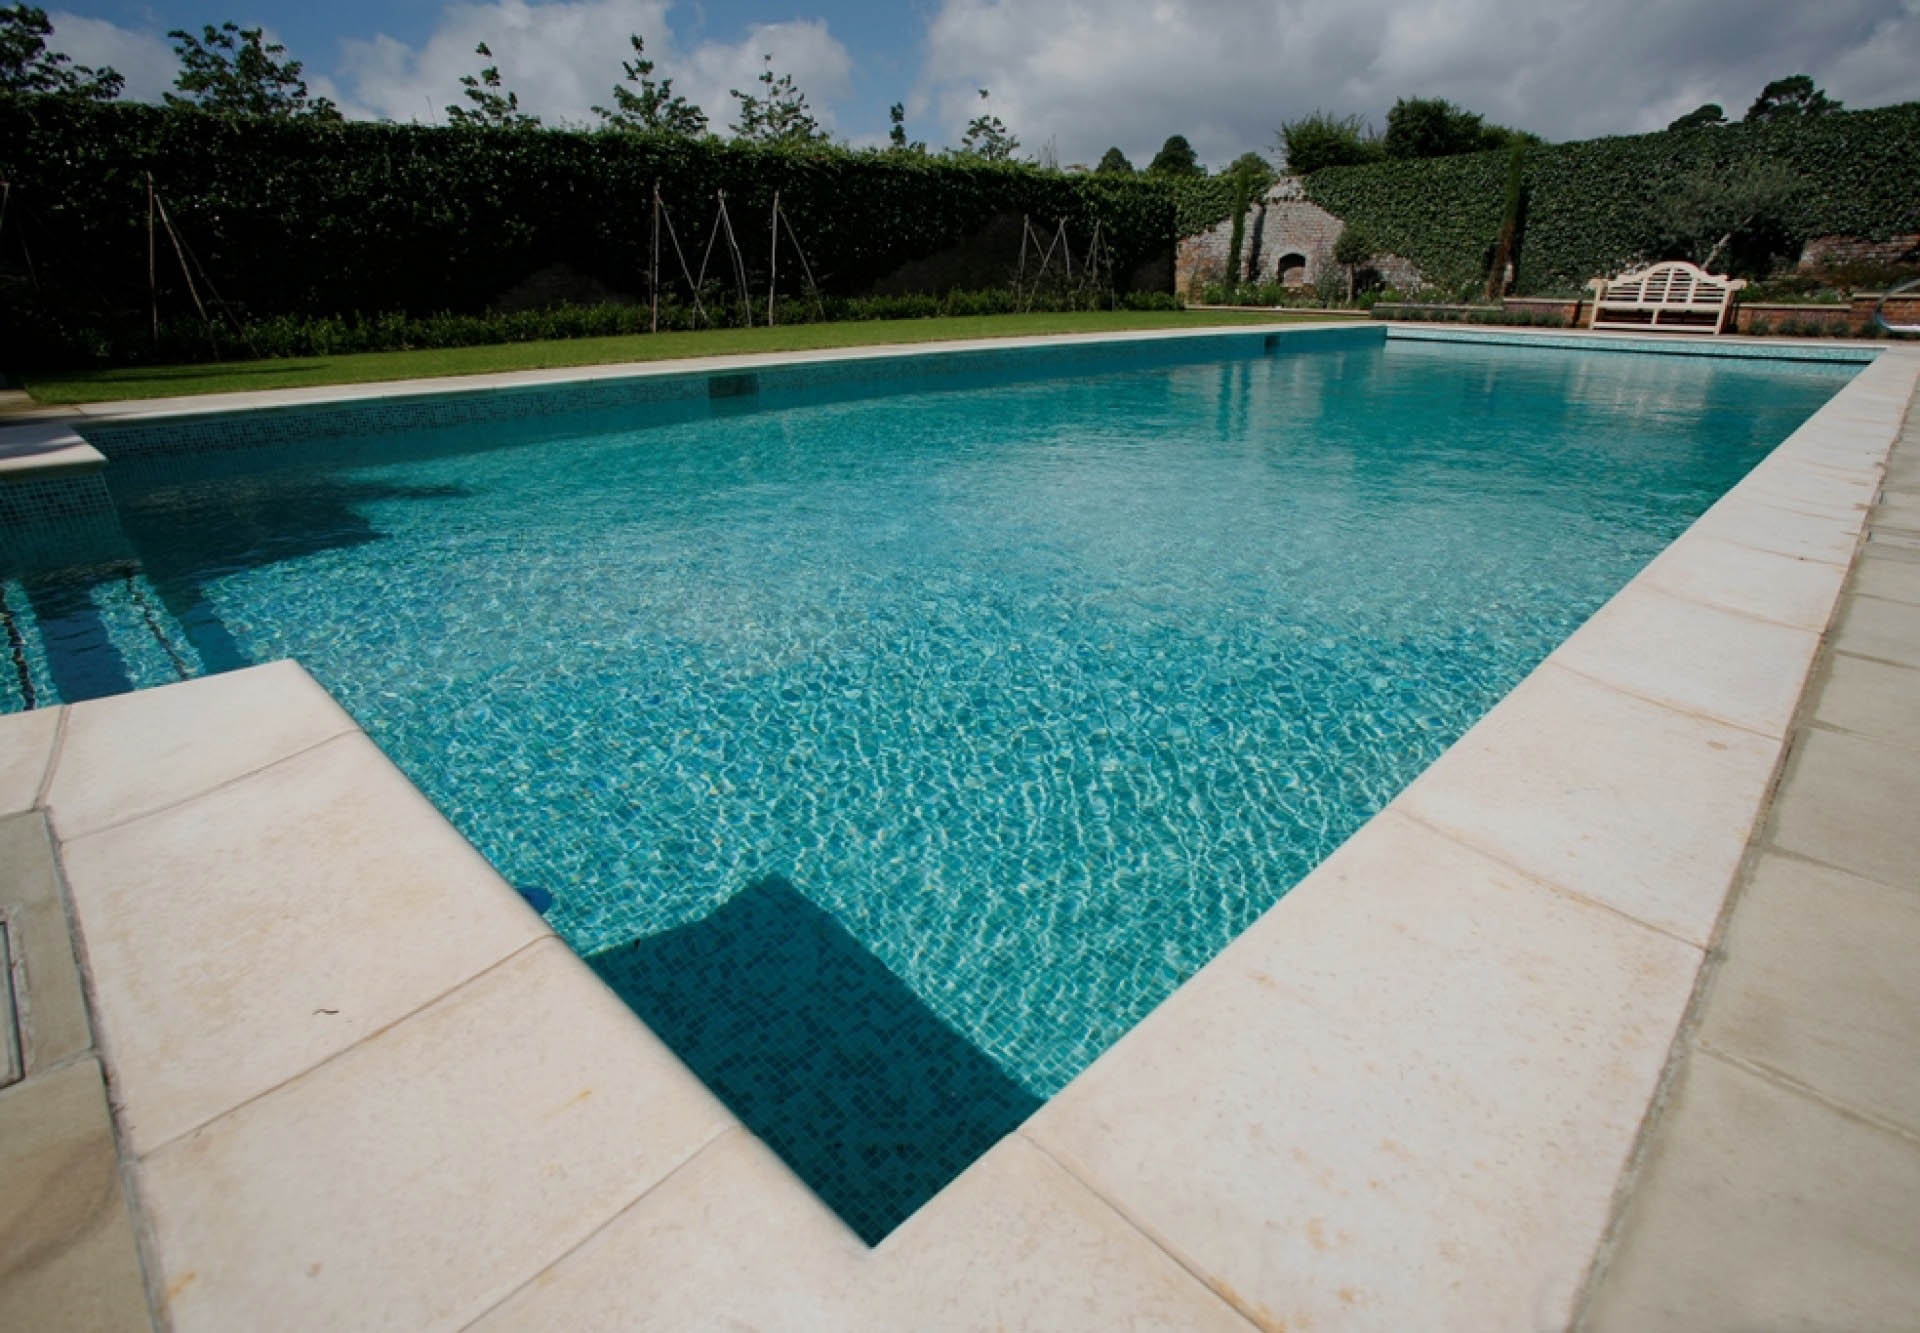 Swimming pool installation and maintenance engineers